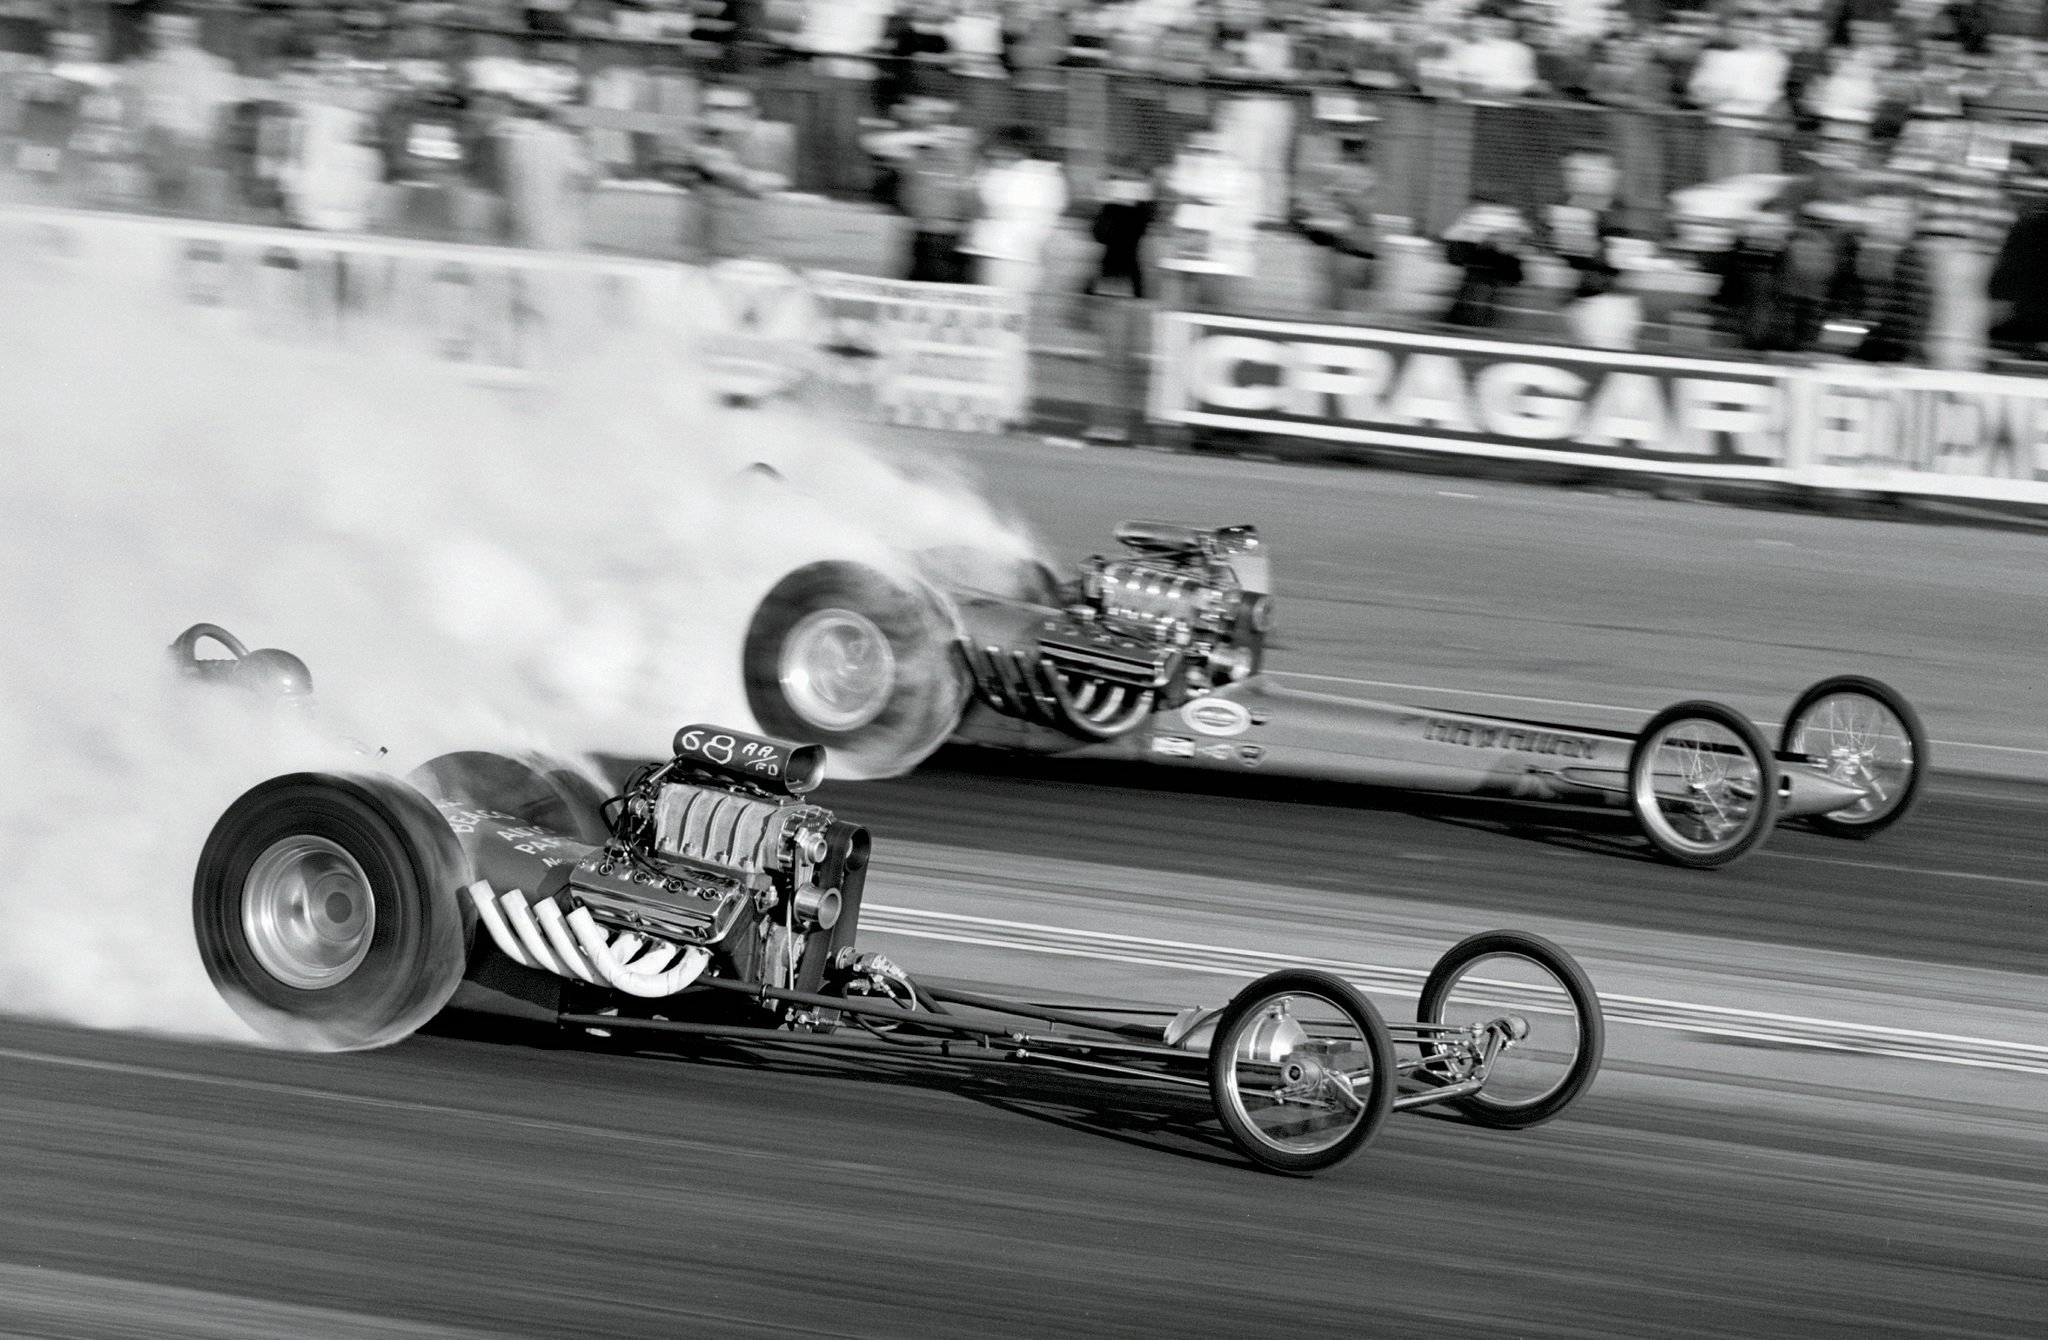 With 76 Top Fuel Dragsters contesting the fifth-annual Winternationals, nobody was picking these two kids to go far—let alone win NHRA's biggest two 1965 events. Rick Stewart (near lane) was the victim of Don Prudhomme's stout 7.75 in the Top Fuel semifinals, despite what appears to be airborne paper or cardboard clogging Don's injector hat. The Kent Fuller–built Hawaiian, a virtual duplicate of the all-conquering Greer, Black & Prudhomme fueler, went on to win September's NHRA Nationals (and would repeat the feat in '66, when Mike Snively respectively swept both meets for Roland Leong).